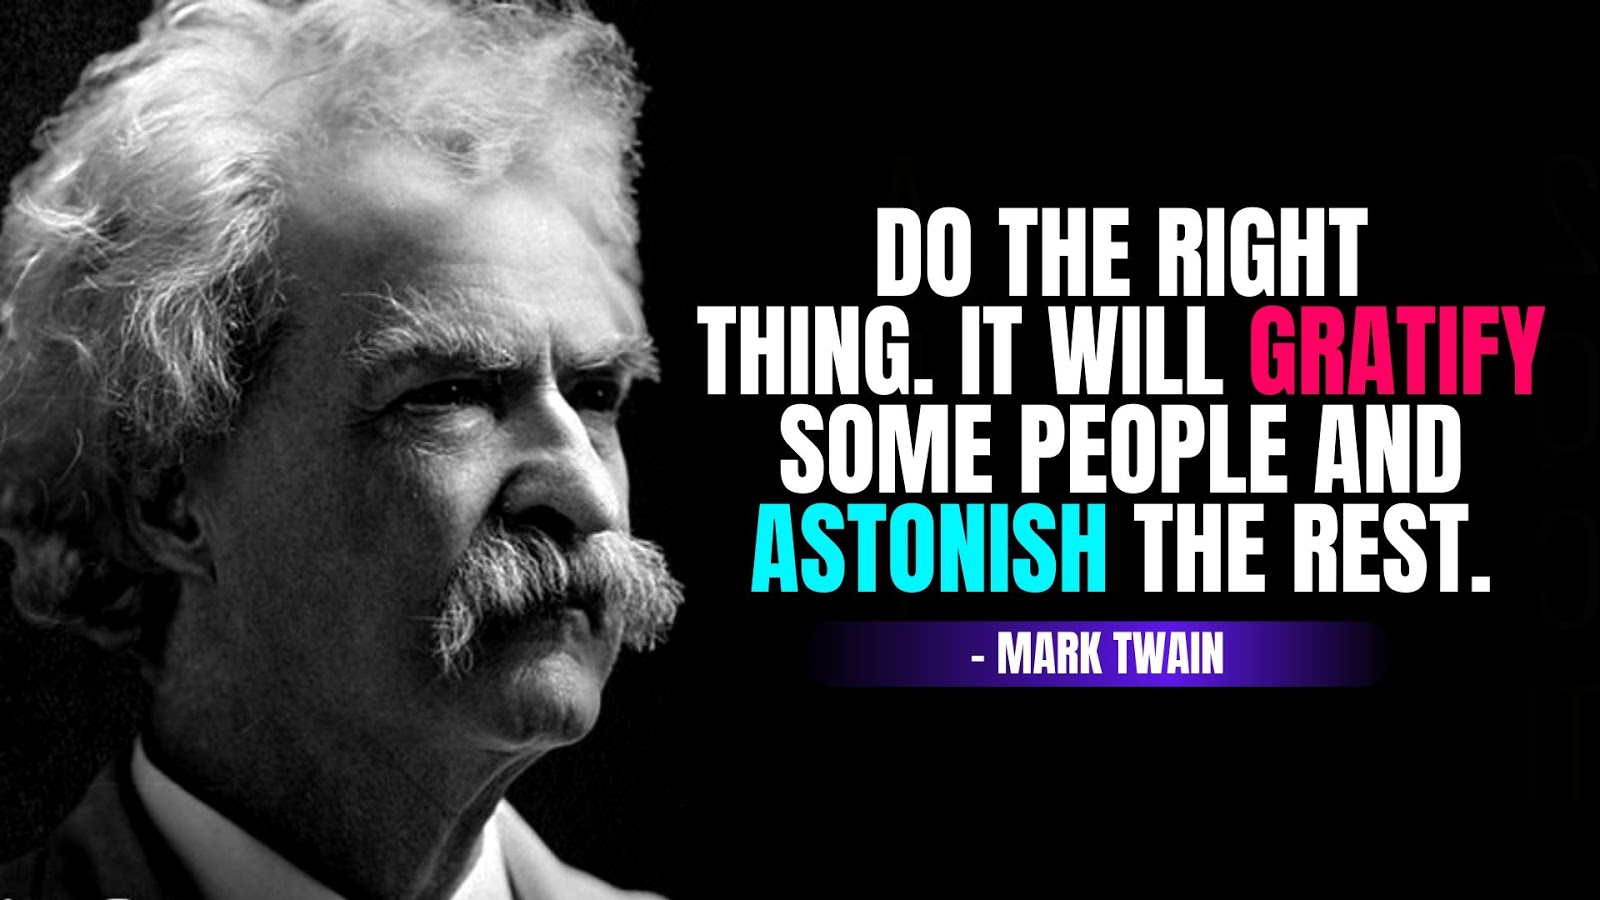 Mark Twain Quotes About Life, Mark Twain Quotes on Life